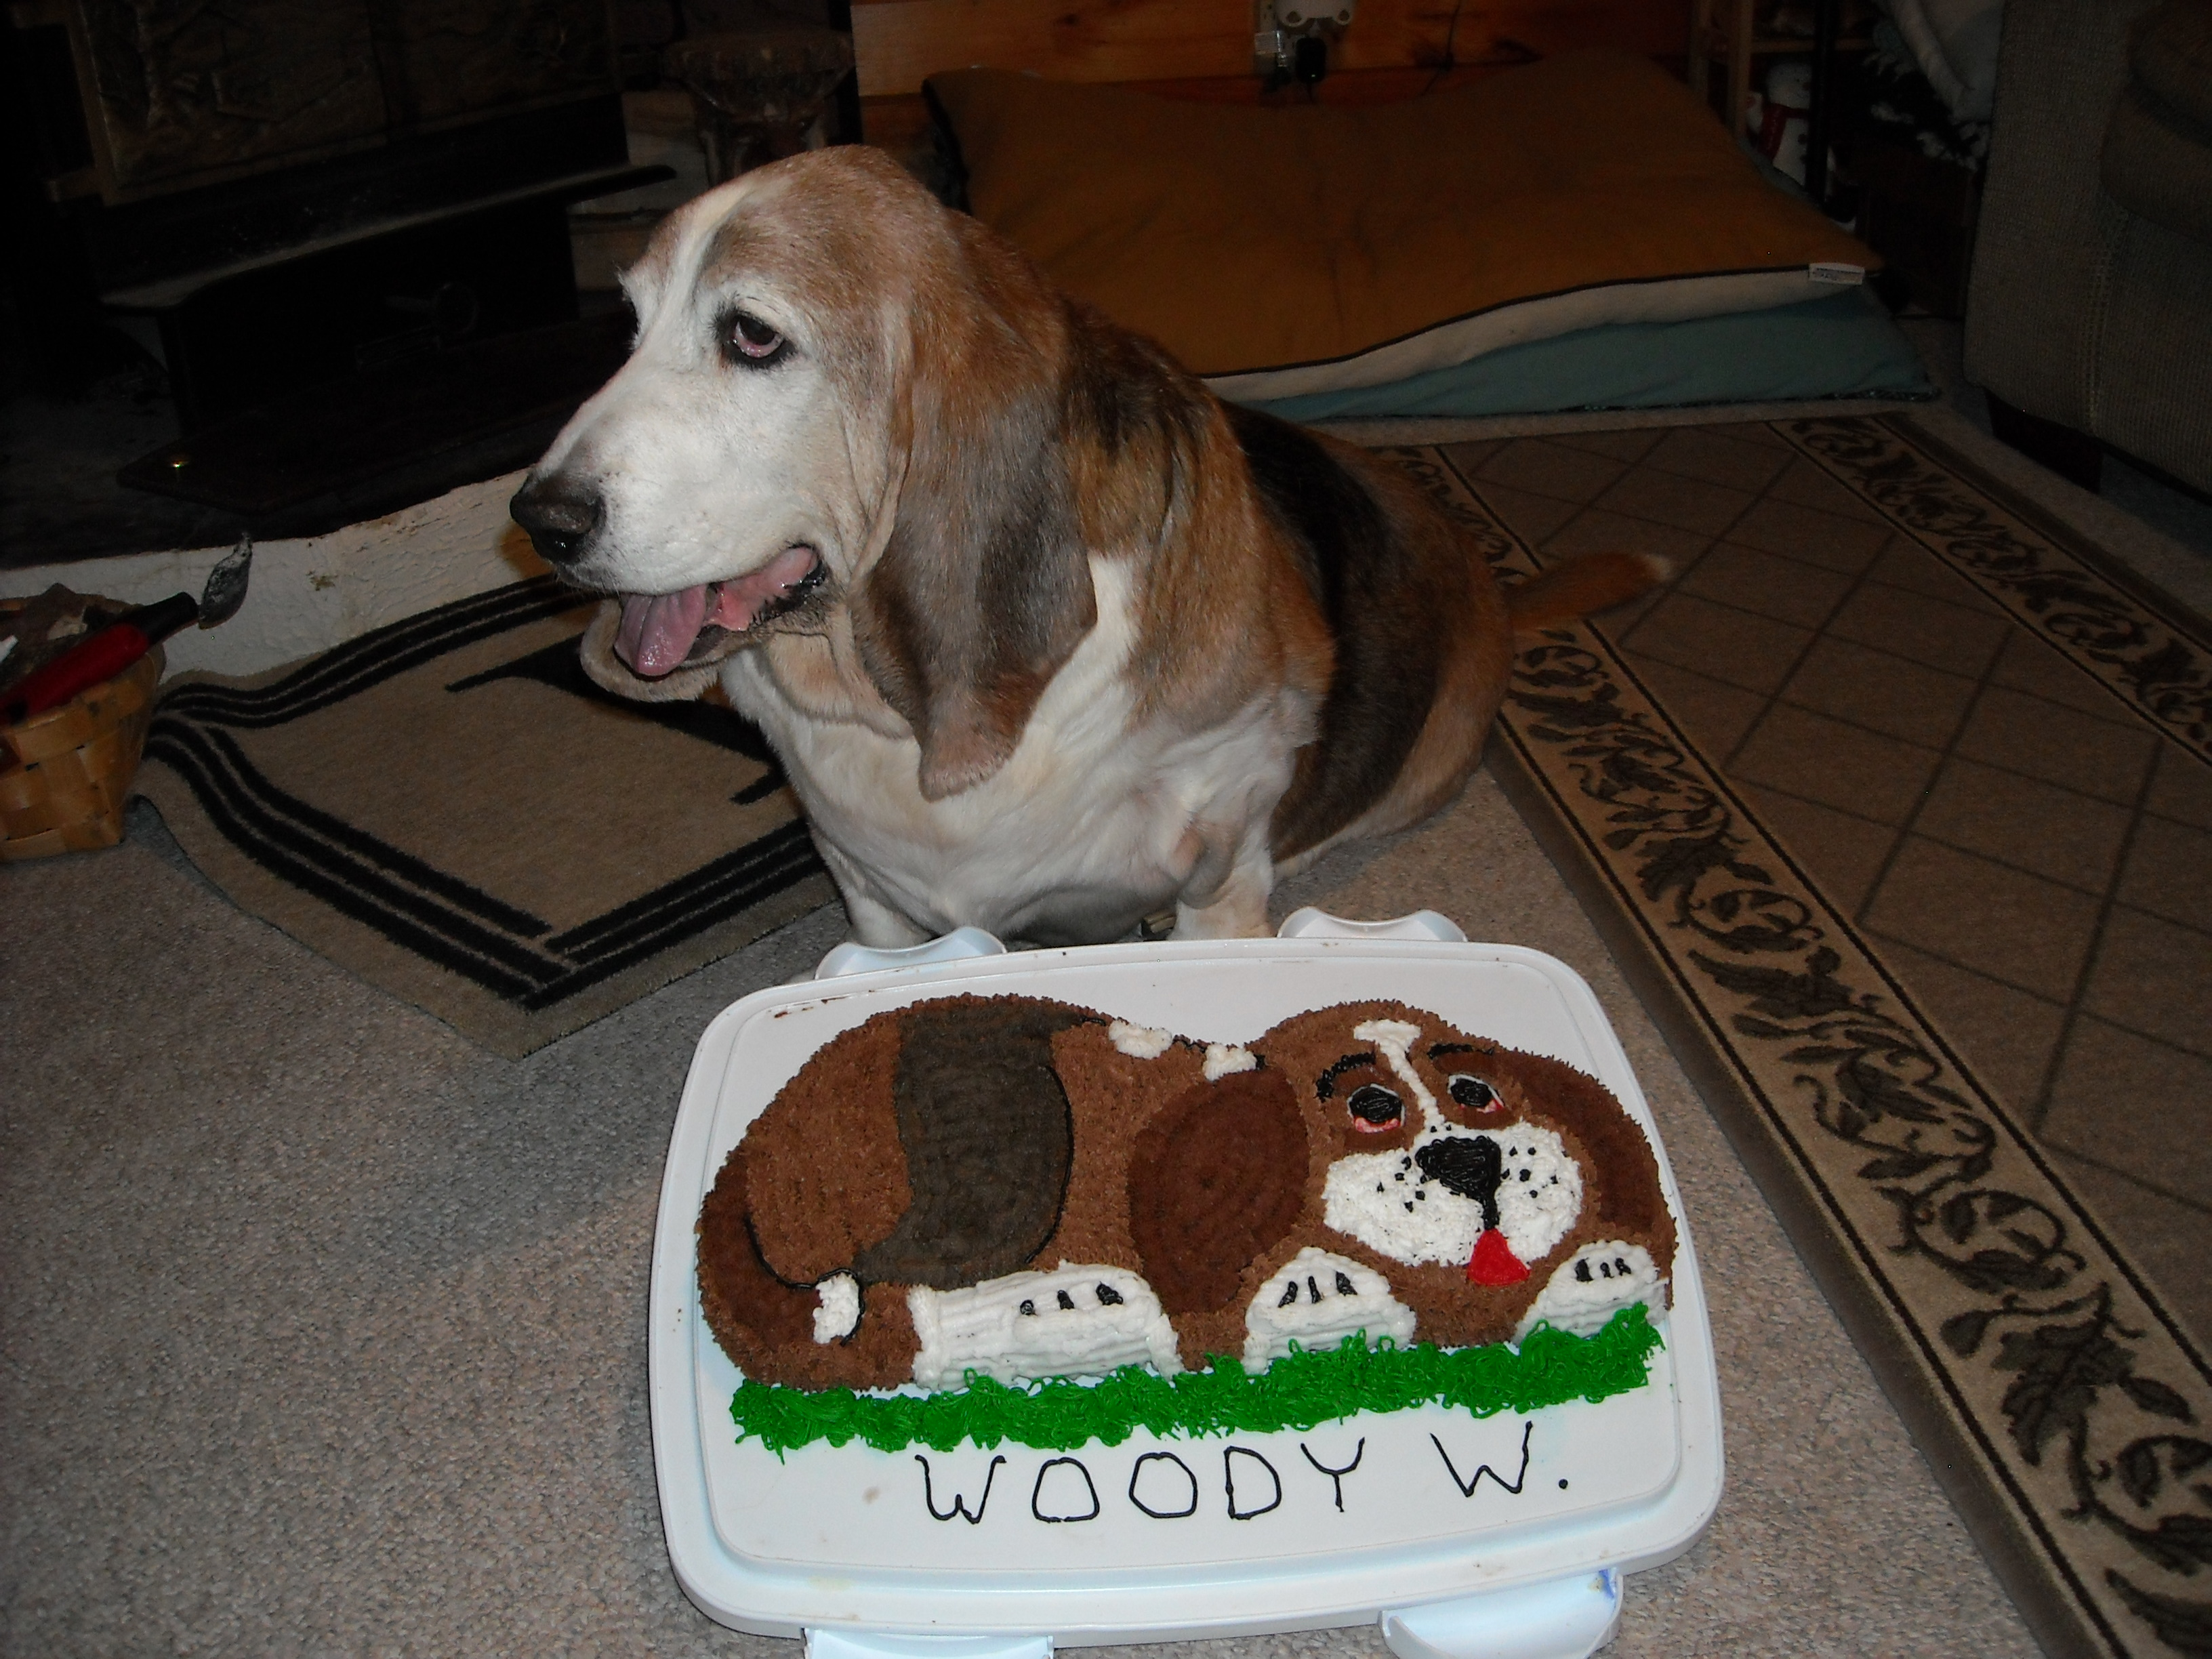 A birthday cake for our senior citizen dog, sadly it was his last.